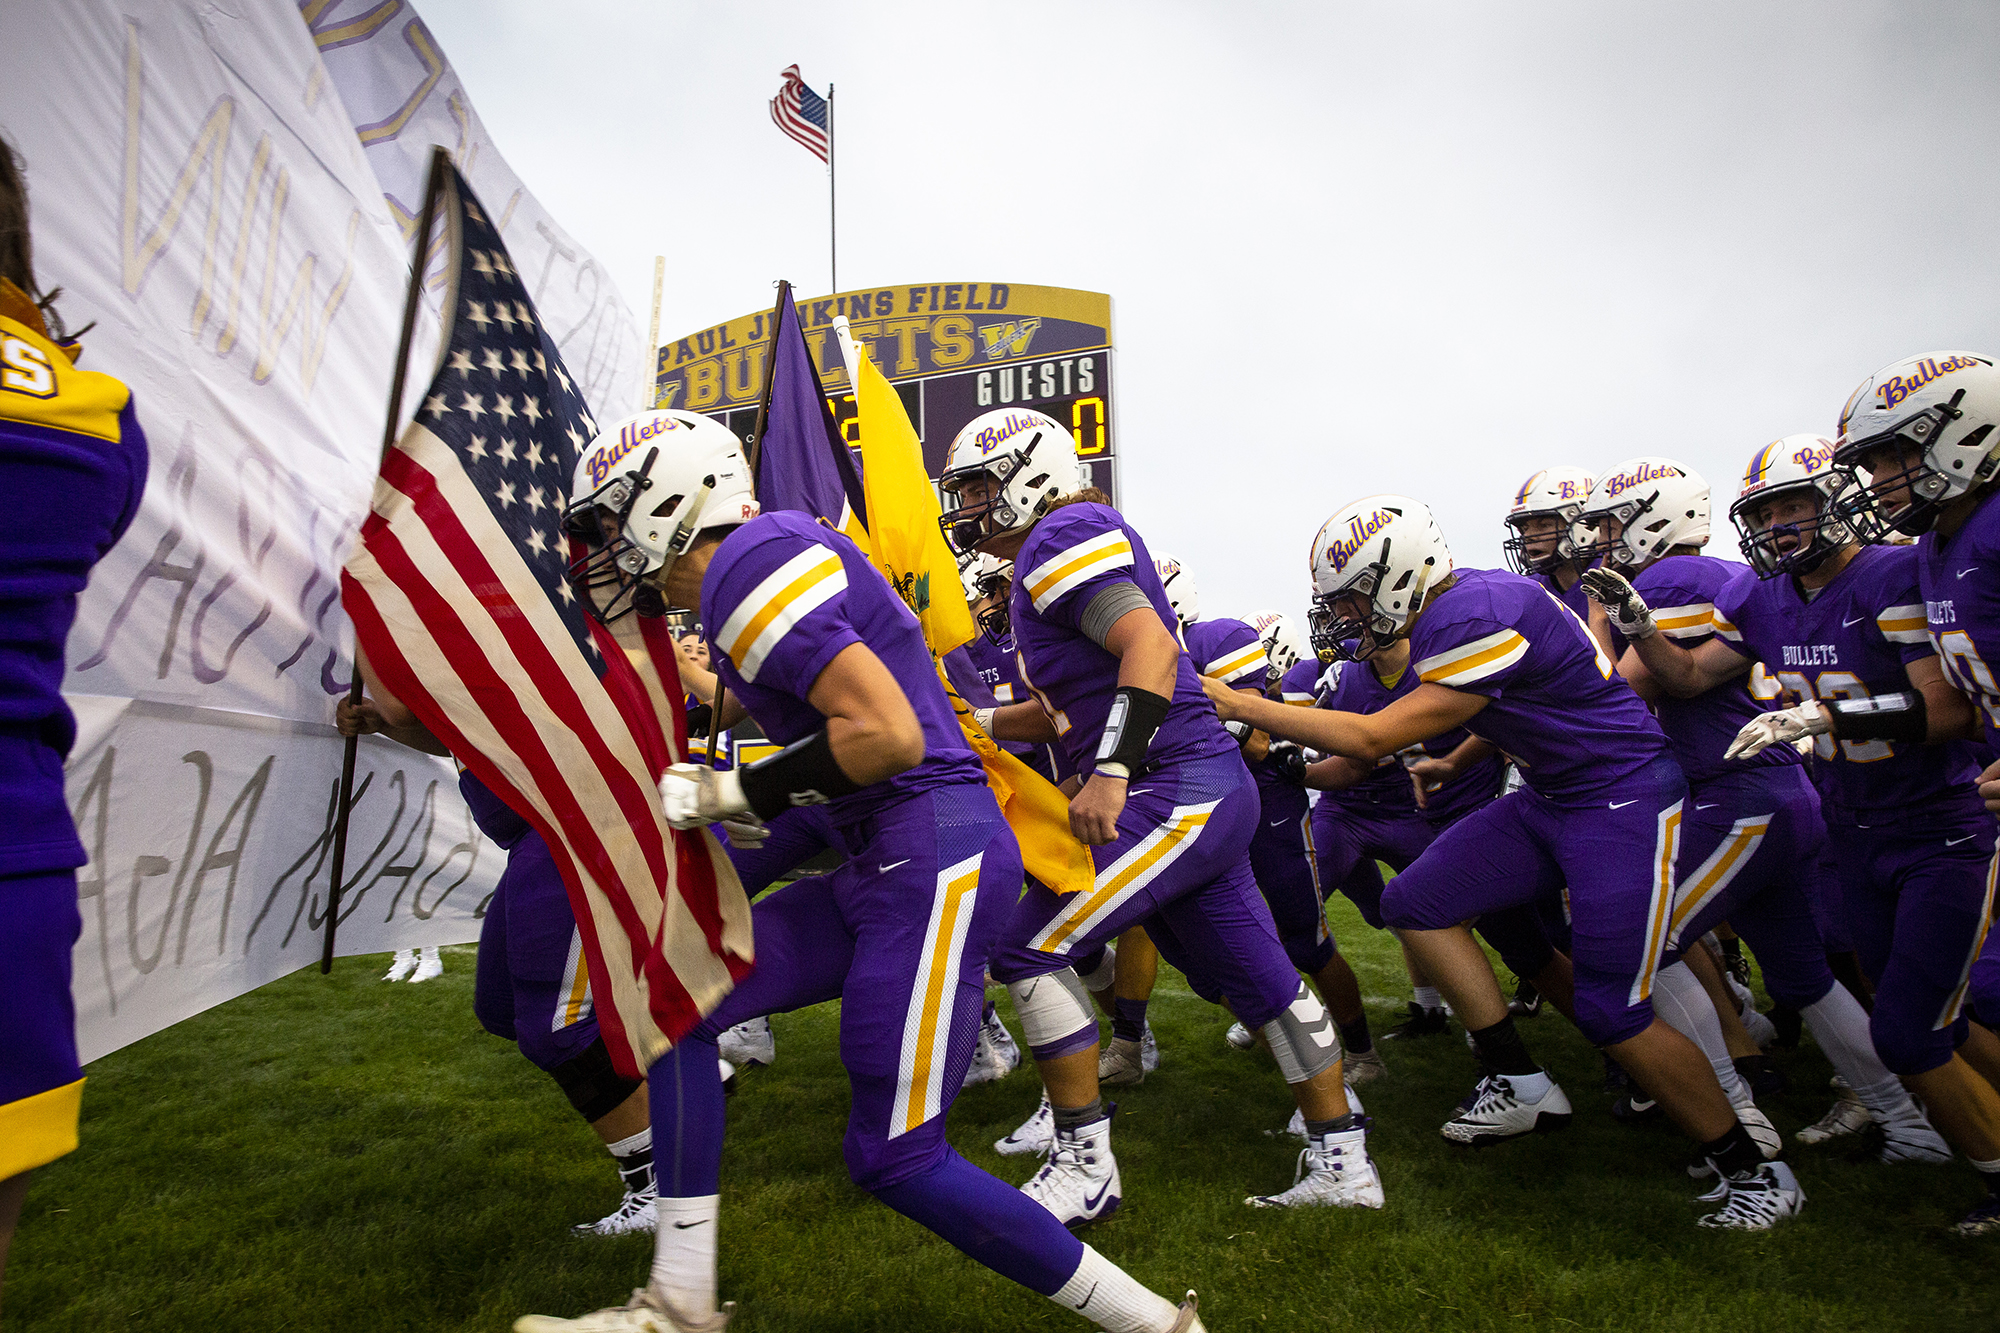 The Williamsville Bullets take the field for the Sangamo Conference season opener agains the Athens Warriors Friday, Aug. 24, 2018 at Williamsville High School in Williamsville, Ill. [Rich Saal/The State Journal-Register]